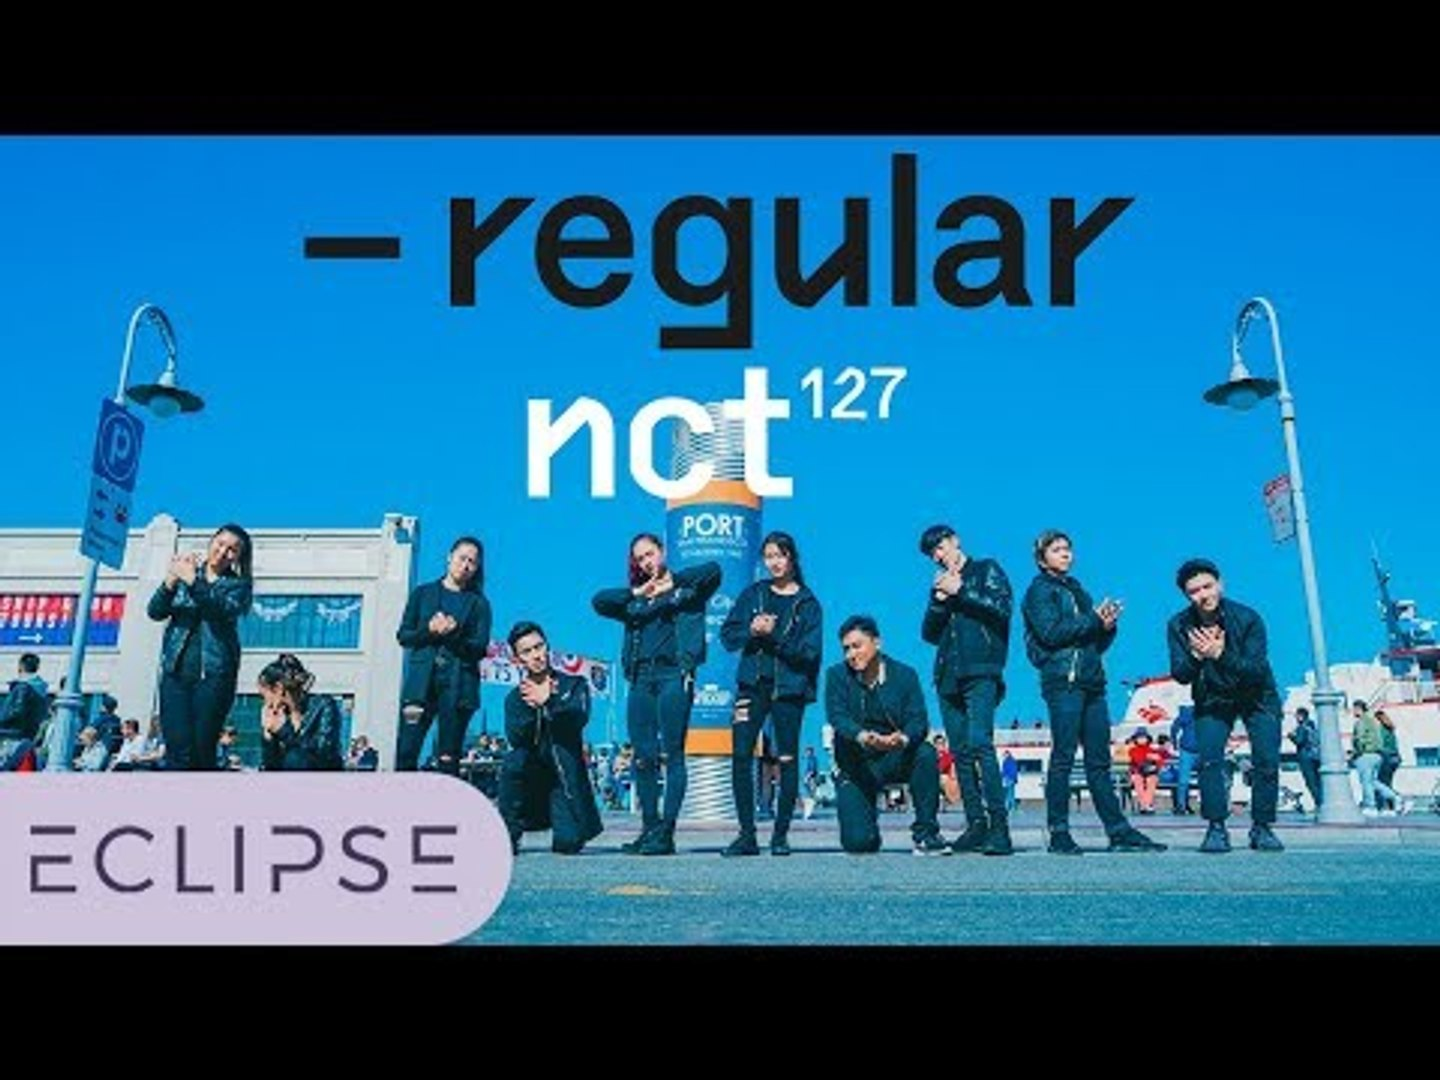 [KPOP IN PUBLIC] NCT 127 (엔시티 127) - Regular Full Dance Cover at Fisherman's Wharf in SF [Eclip